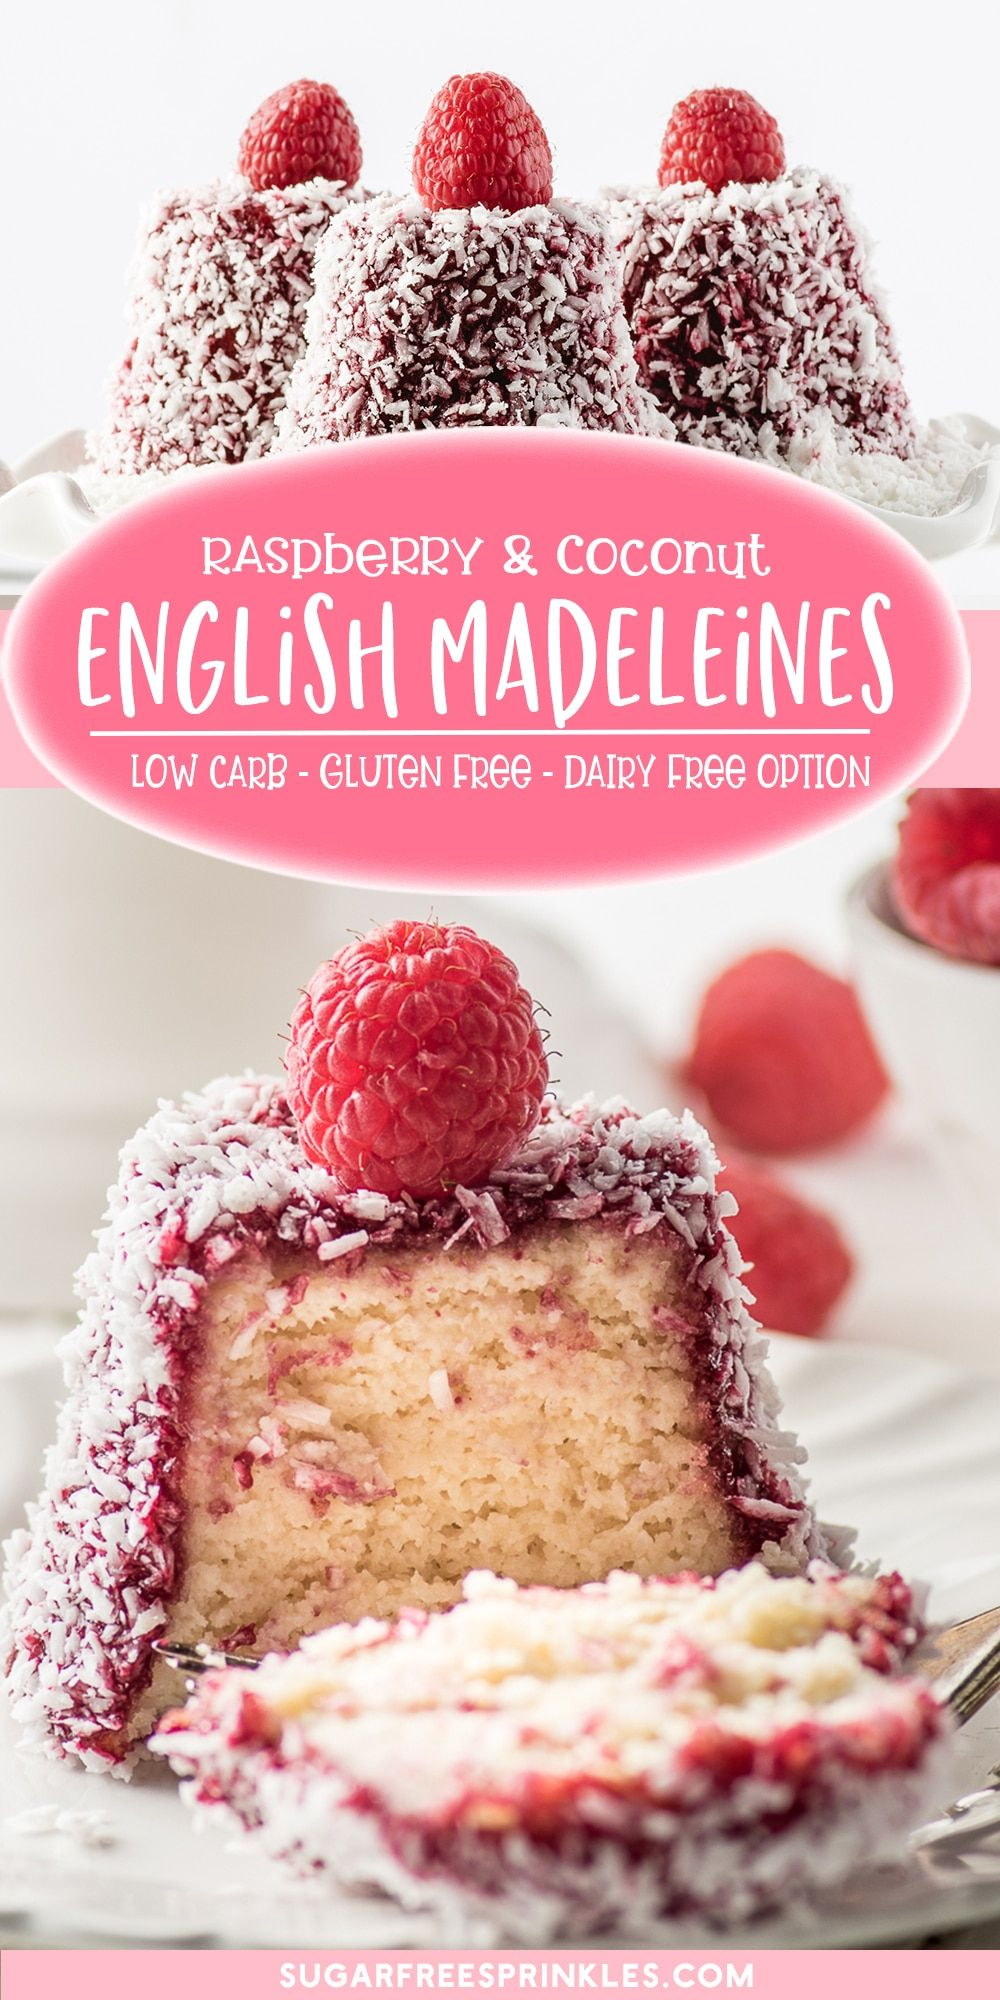 A Fun Low Carb Dessert Recipe To Make English Madeleines These